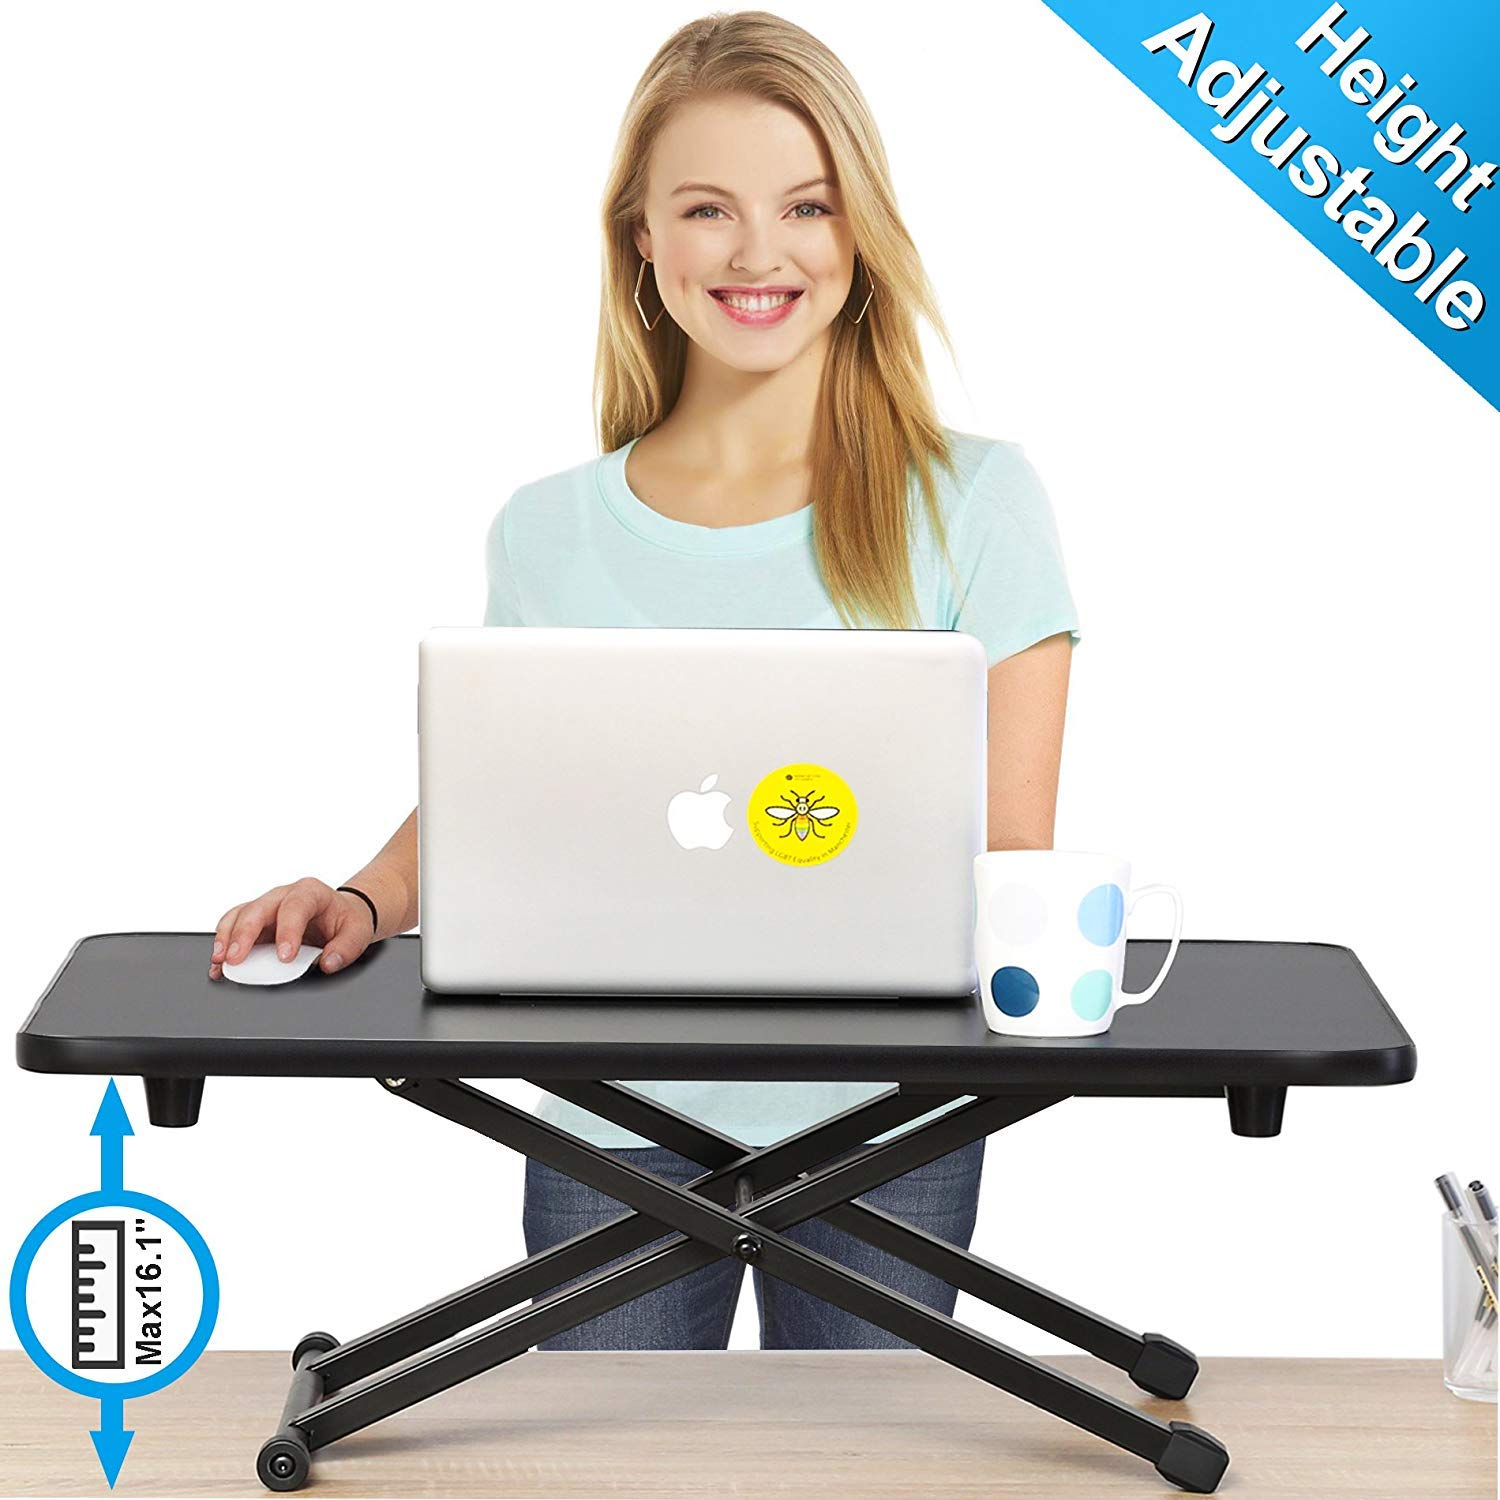 FITUEYES Height Adjustable Standing Desk Gas Spring Riser Desk Converter for Dual Monitor Sit to Stand in Seconds FSD108001MB by FITUEYES